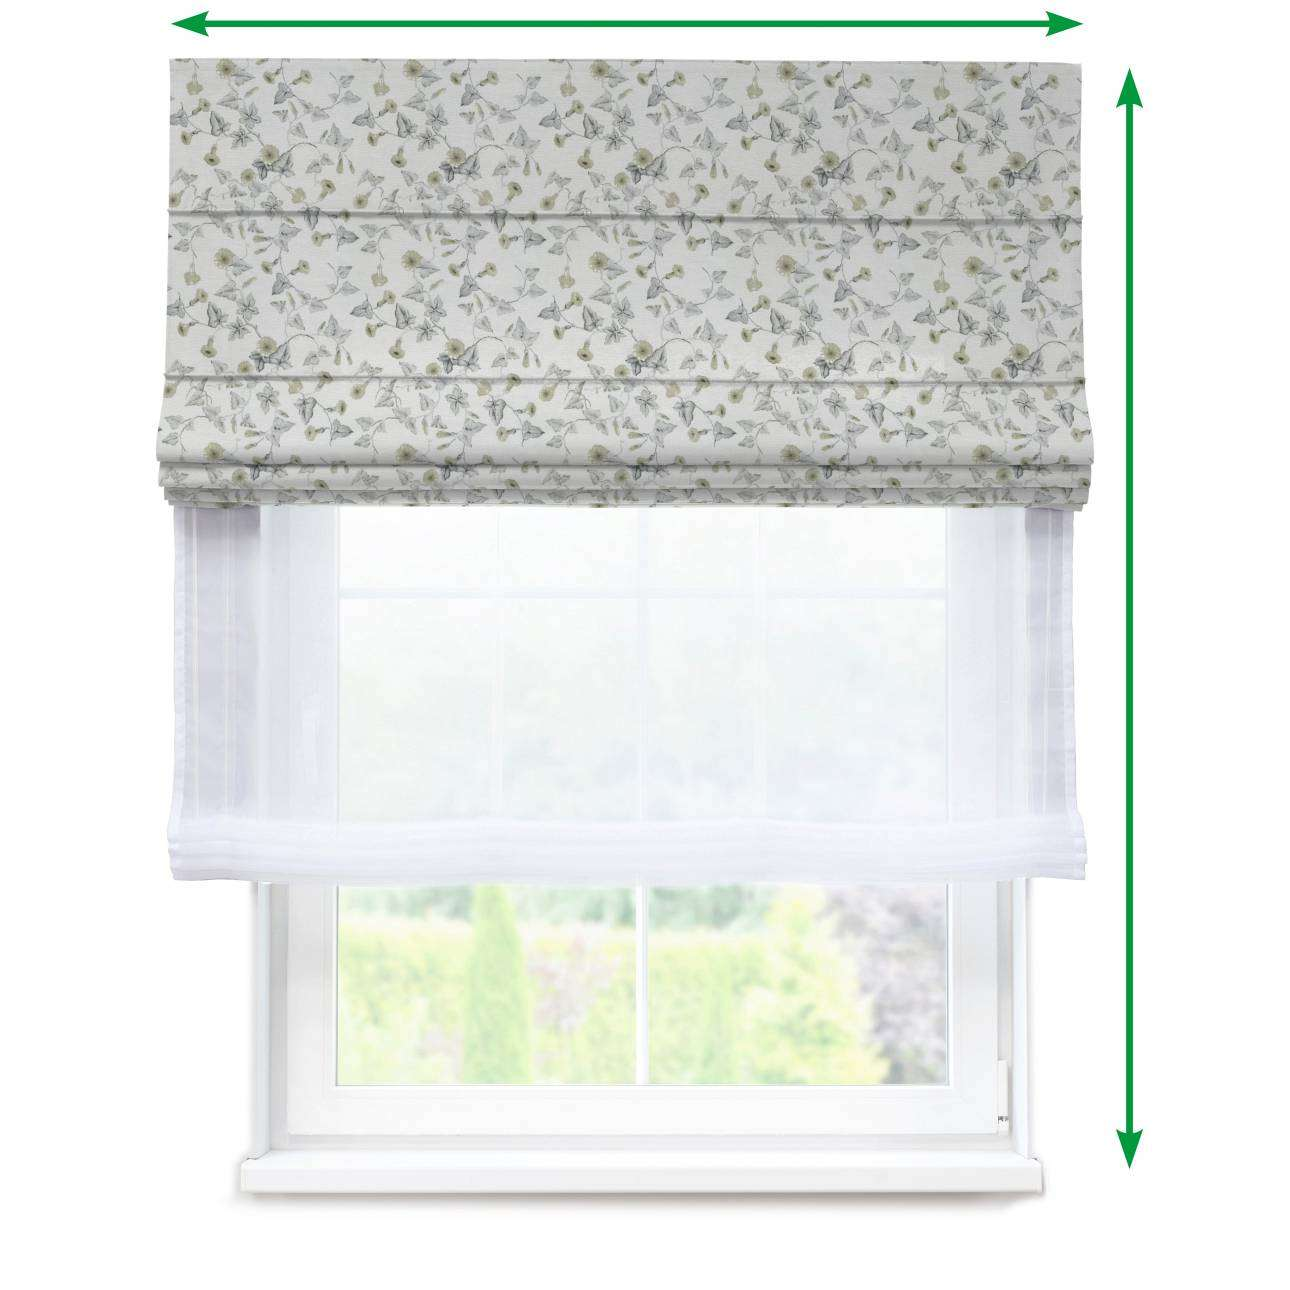 Voile and fabric roman blind (DUO II) in collection Mirella, fabric: 140-42